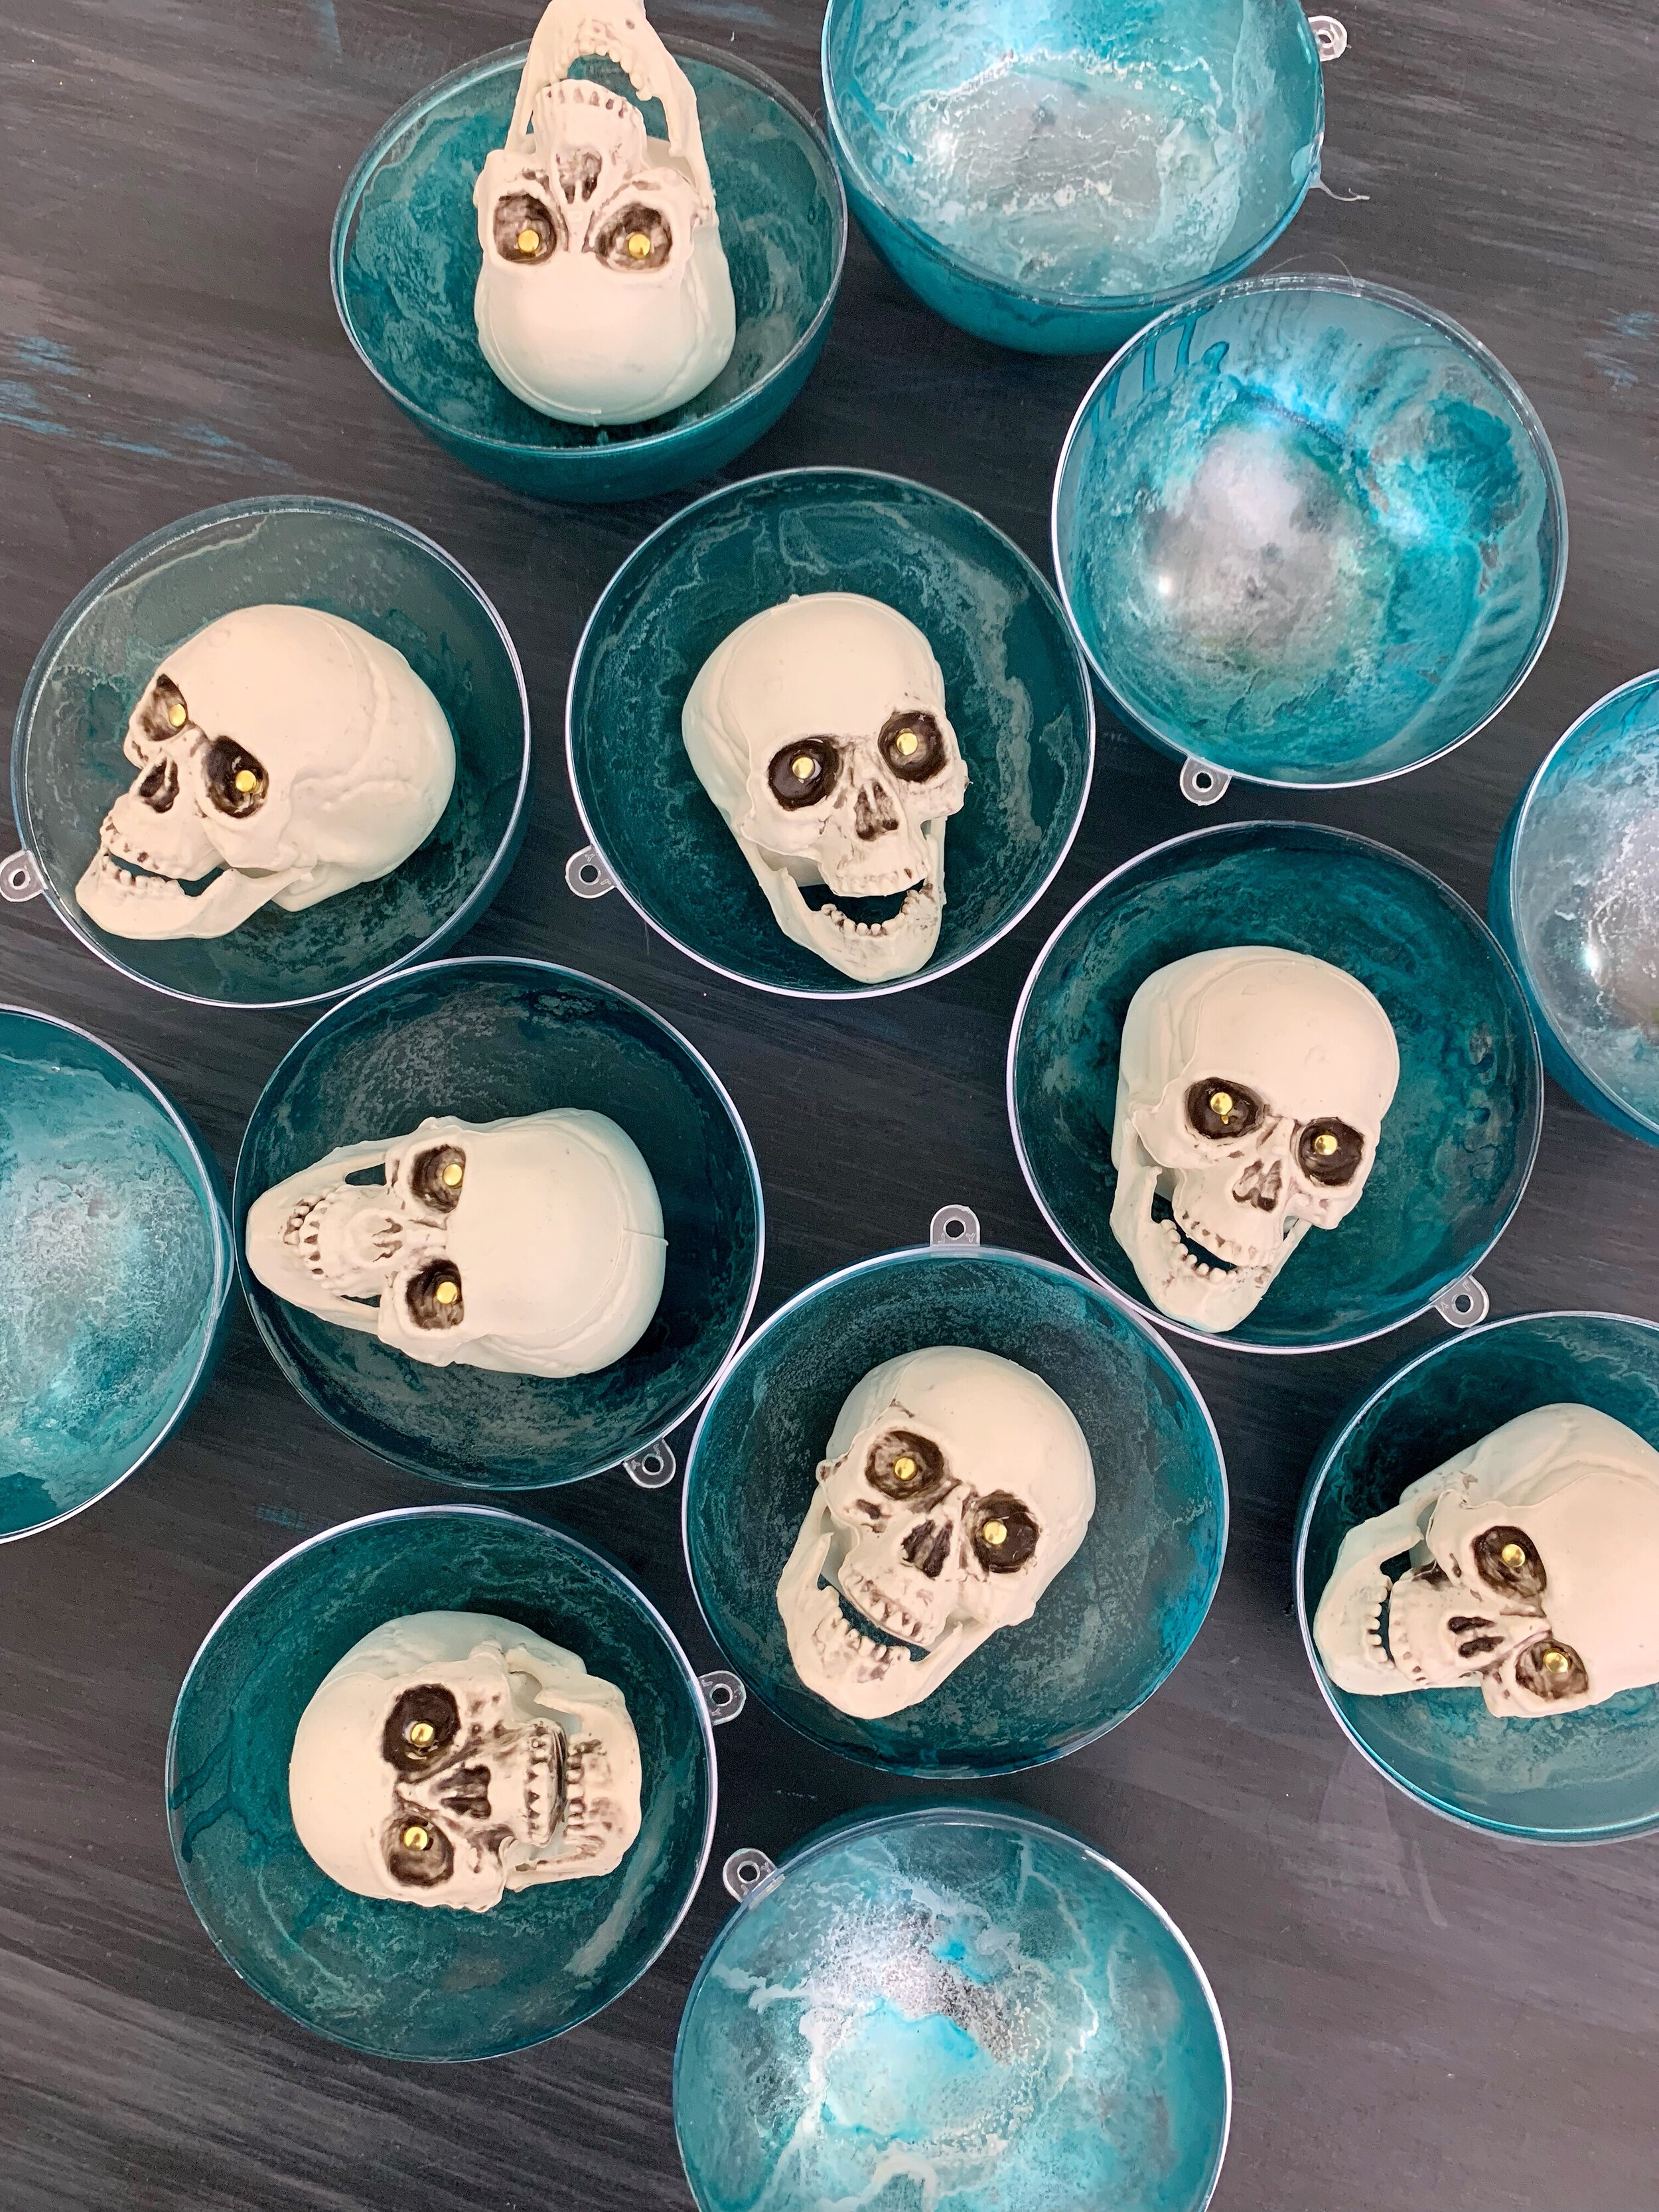 DIY Alcohol Ink Crystal Ball Ornaments - Create a mystical light up crystal ball with a glowing skull inside.  #HalloweenTree #treetopia #HalloweenOrnaments #FortuneTellerDecor #VintagePsychicDecoration #TarotCards #psychic #psychicmedium #fortuneteller #palmreader #Paranormal #crystalball #skull #Halloweencraft #lightupskull #howtoalcoholink #halloweendecorations #halloweendecor